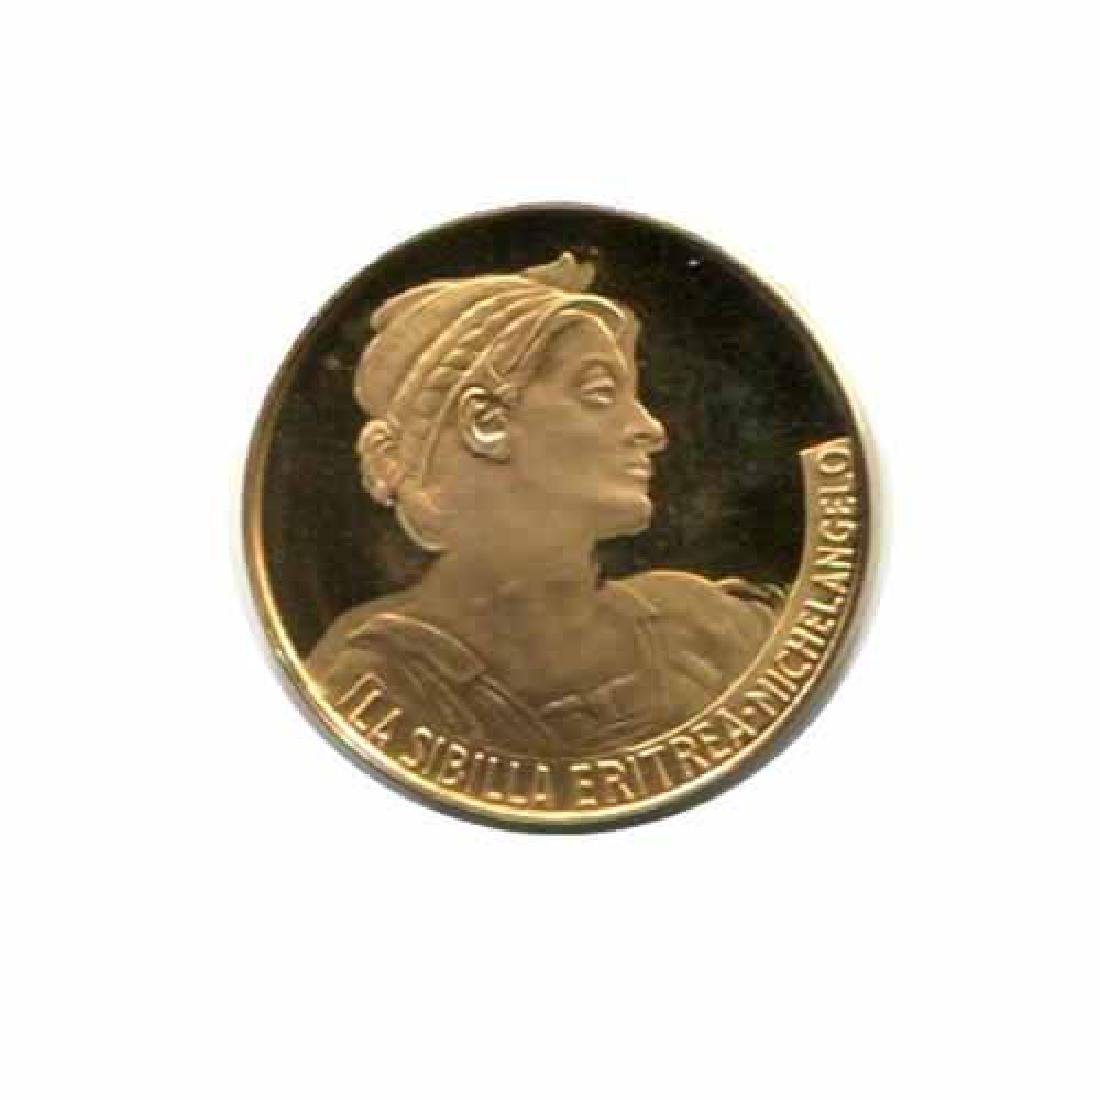 Great Works of the Past gold art medal 6.0 g. PF La Sib